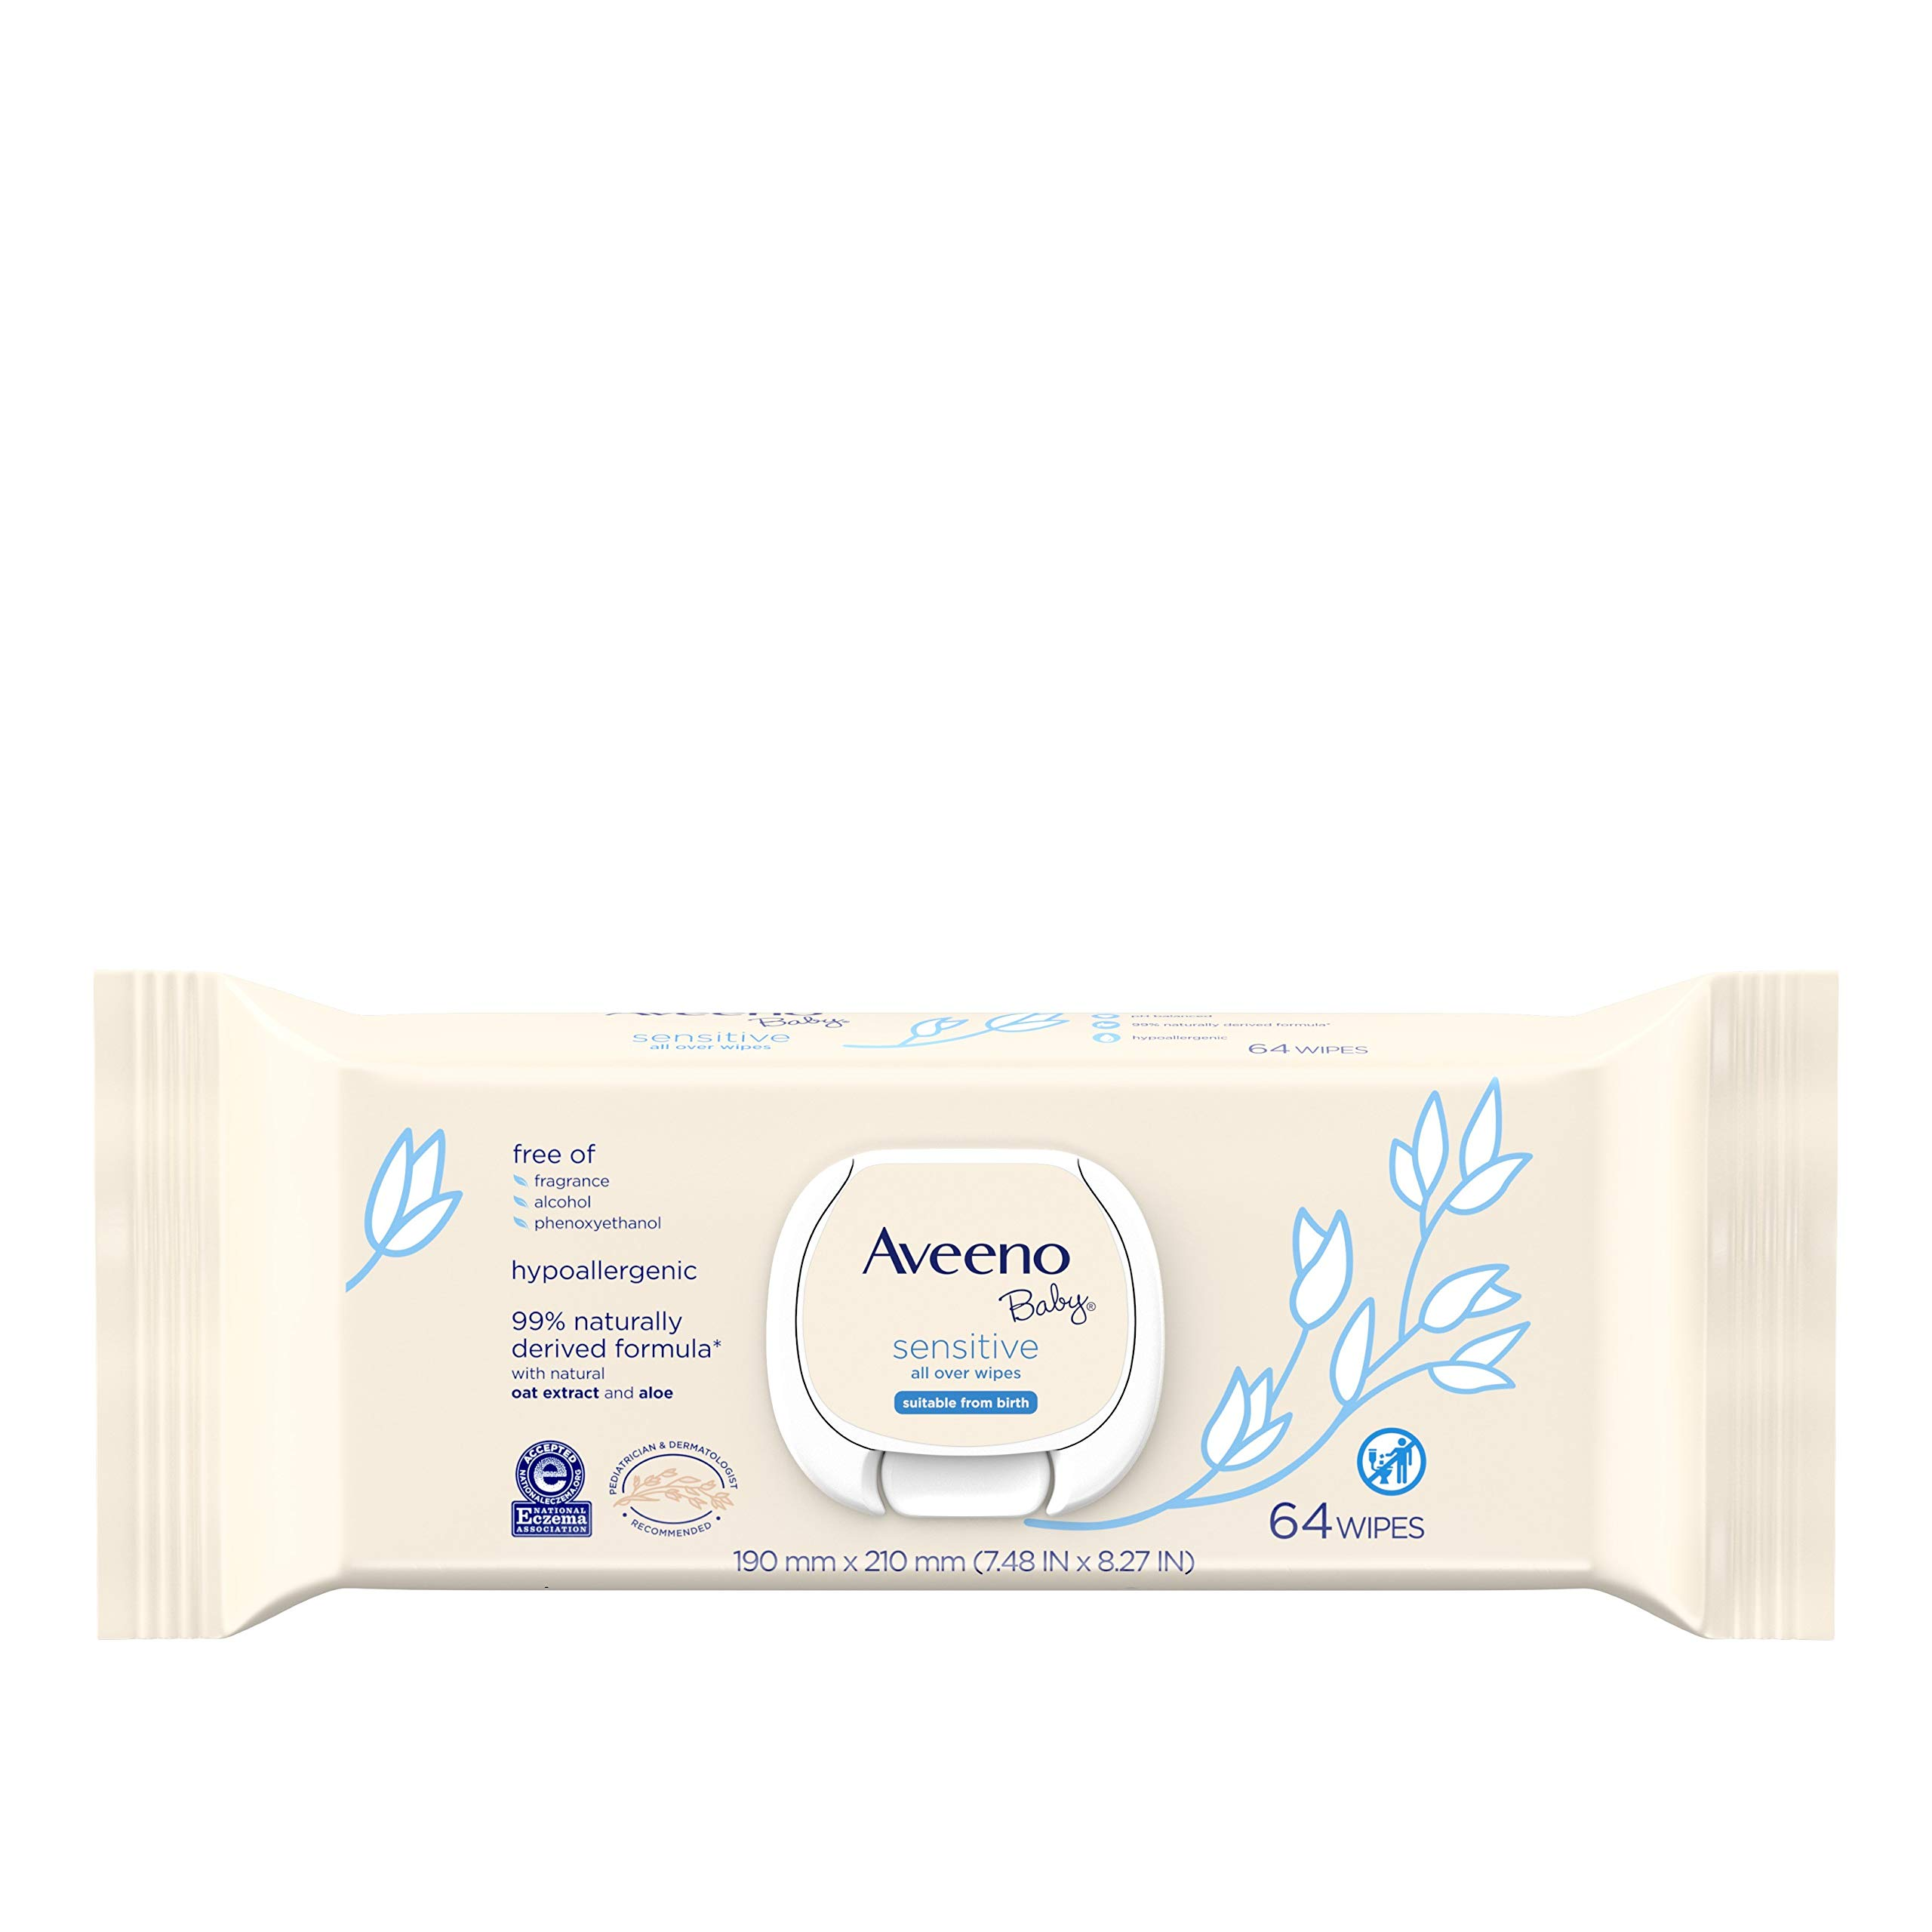 Aveeno Baby Sensitive All Over Wipes with Aloe & Natural Oat Extract for Face, Bottom & Hands, pH-Balanced, Hypoallergenic, Fragrance-, Phthalate-, Alcohol- & Paraben-Free Formula, 64 ct (Pack of 3)